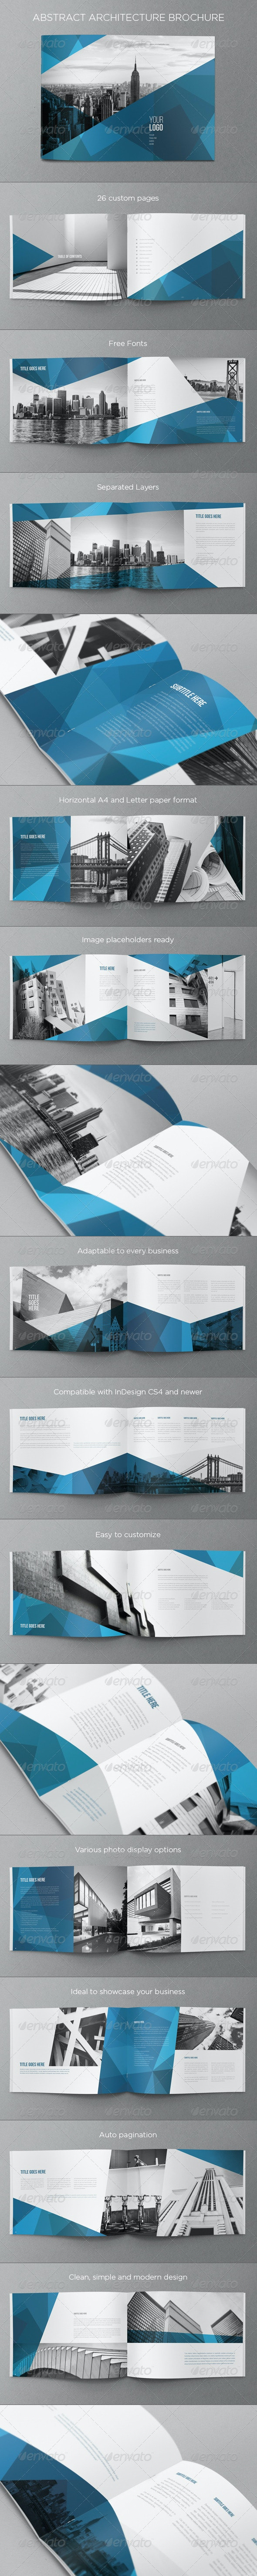 Abstract Architecture Brochure - Brochures Print Templates